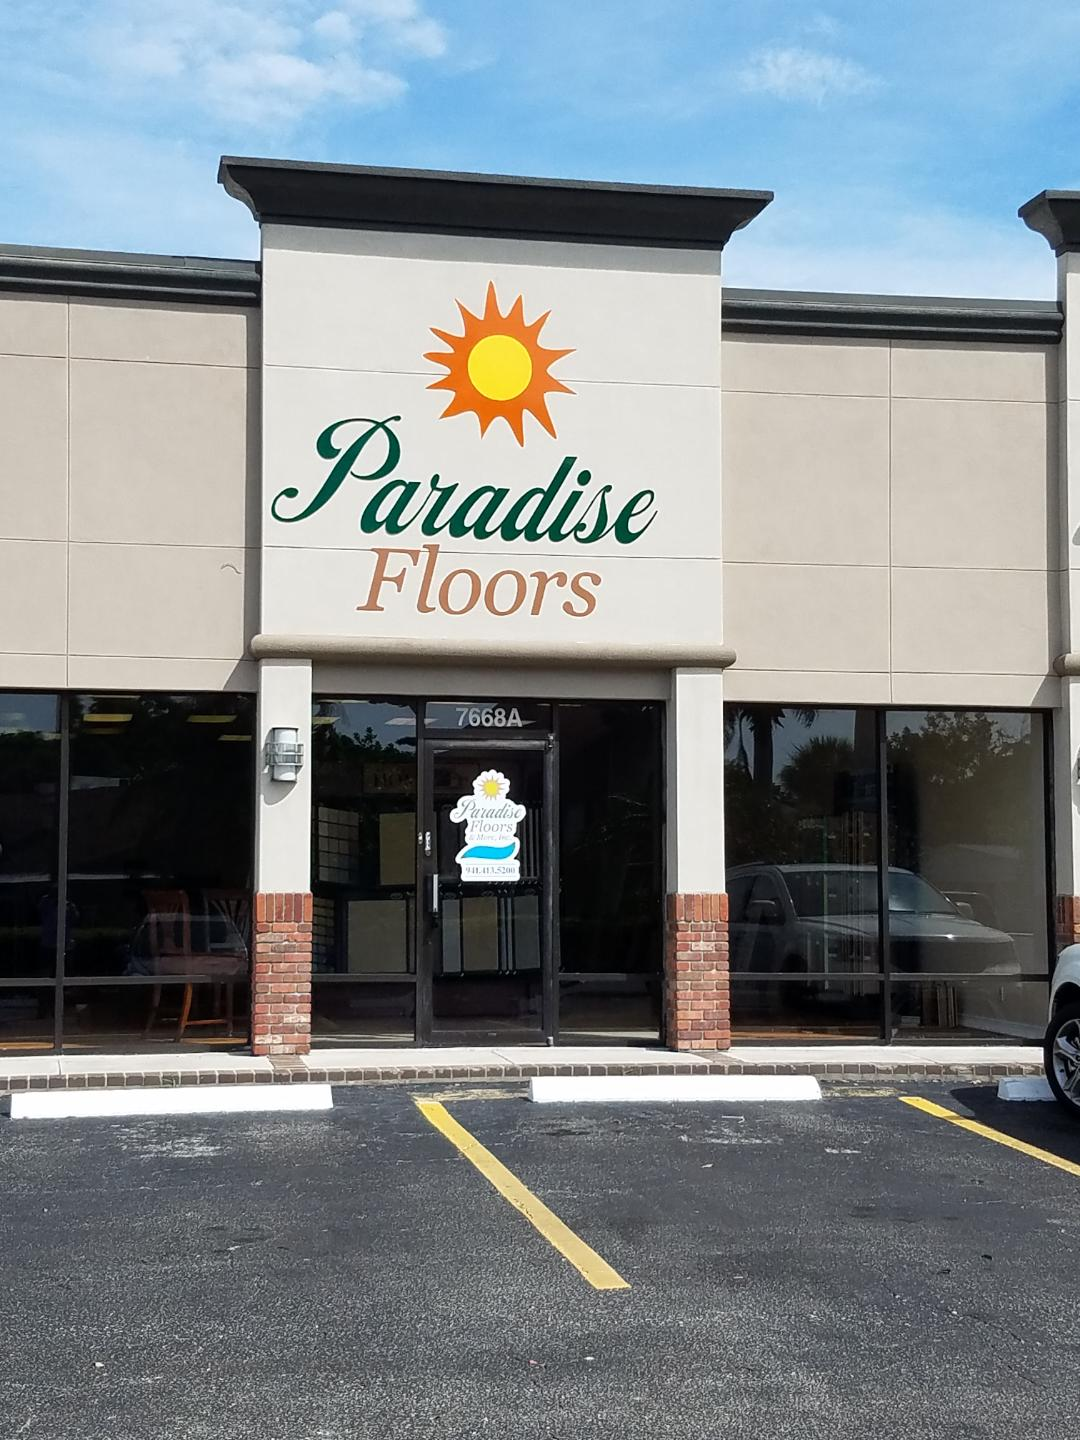 Paradise Floors & More Inc - 7668a S Tamiami Trail, Sarasota, FL 34231